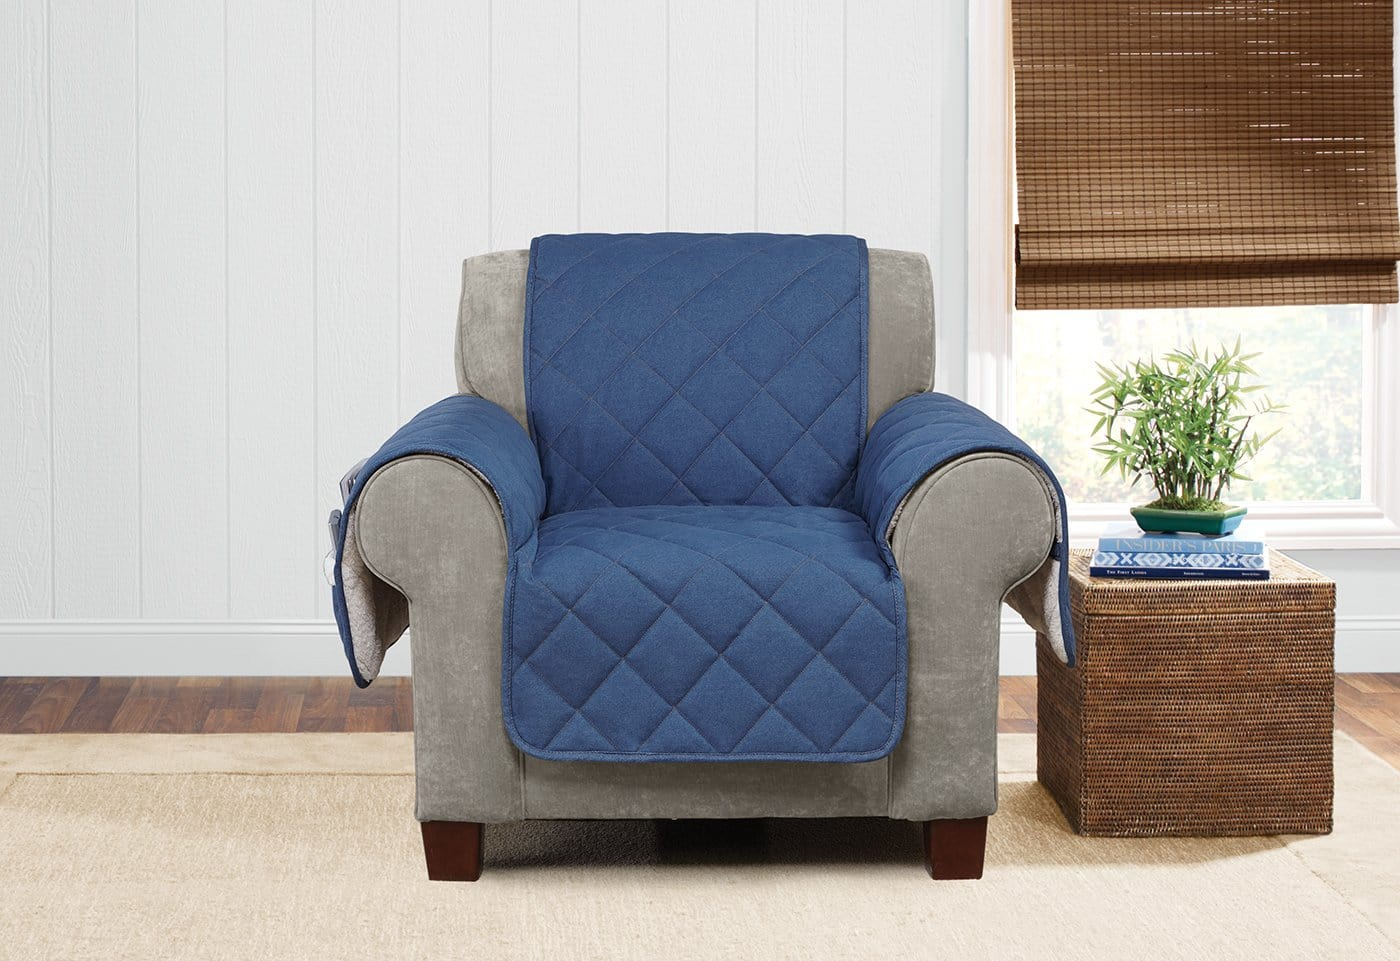 Denim & Sherpa Chair Furniture Cover 100% Polyester Pet Furniture Cover Machine Washable - Chair / Indigo